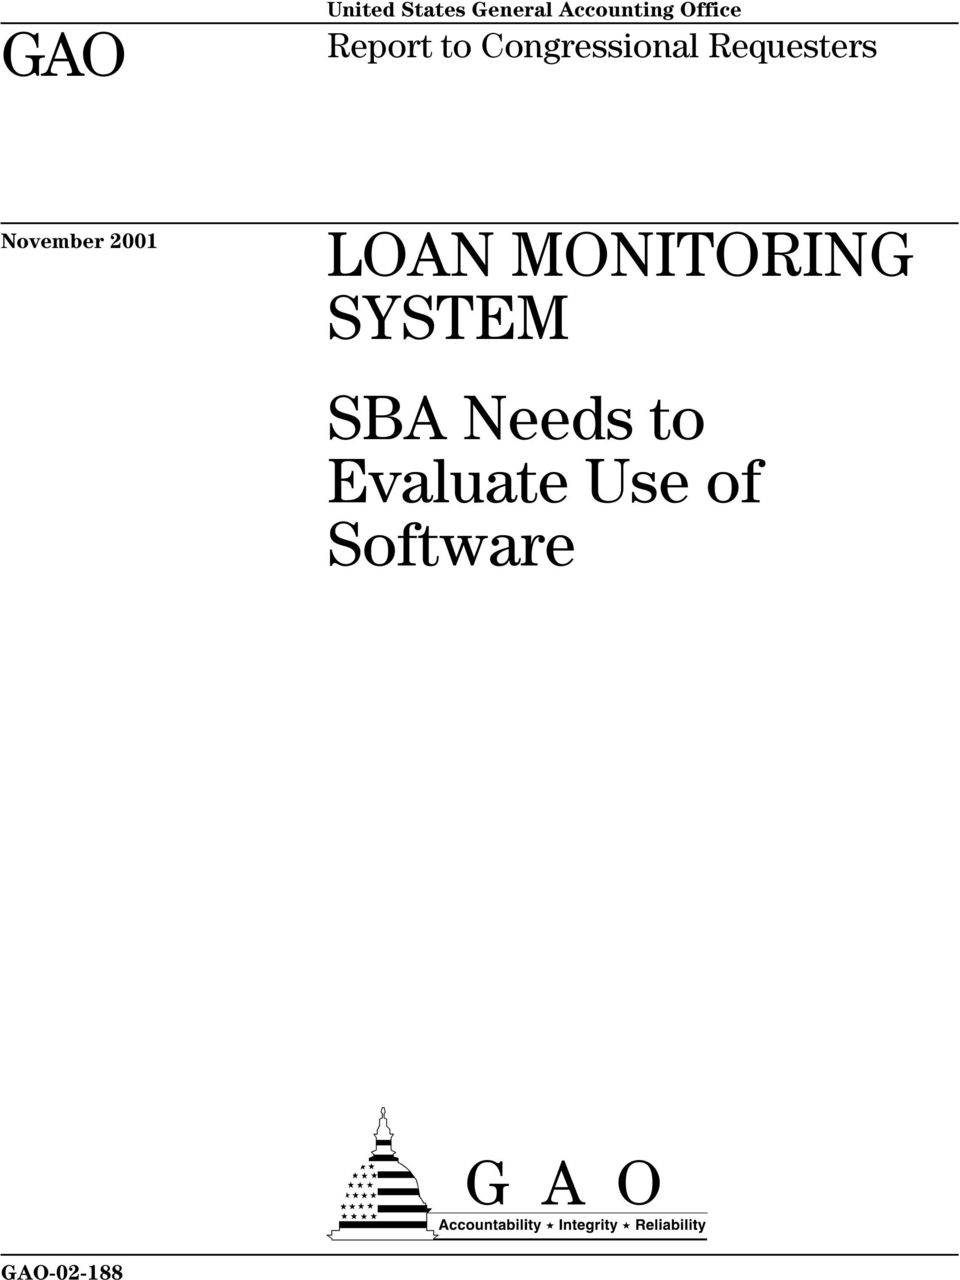 November 2001 LOAN MONITORING SYSTEM SBA